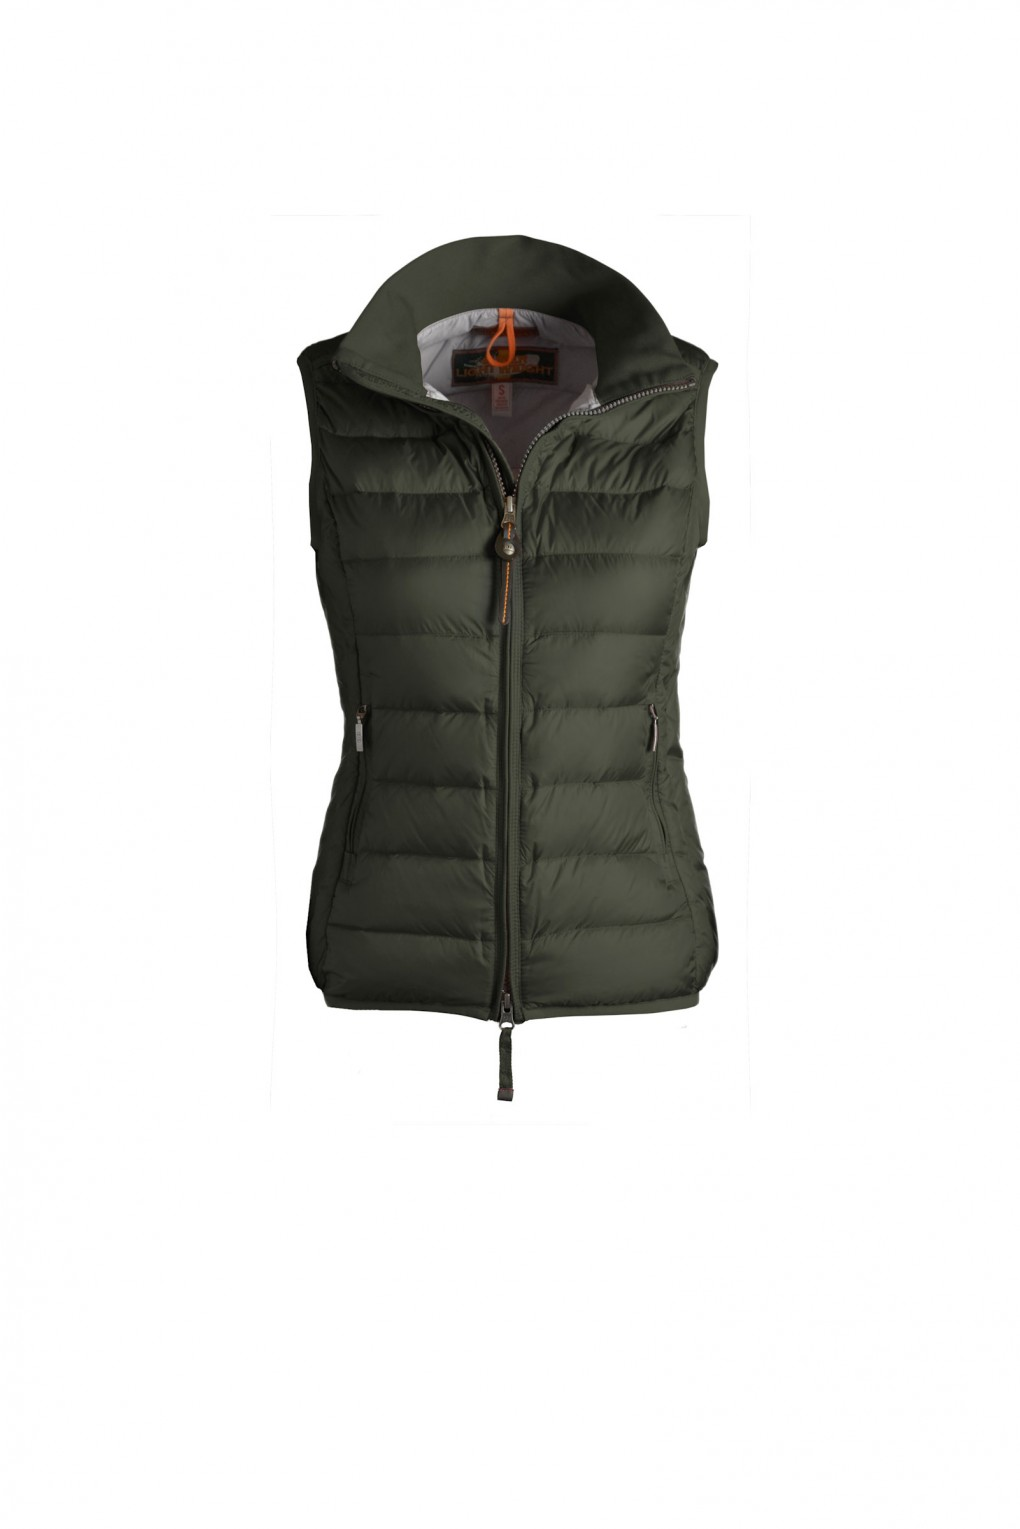 parajumpers DODIE6 woman outerwear Army